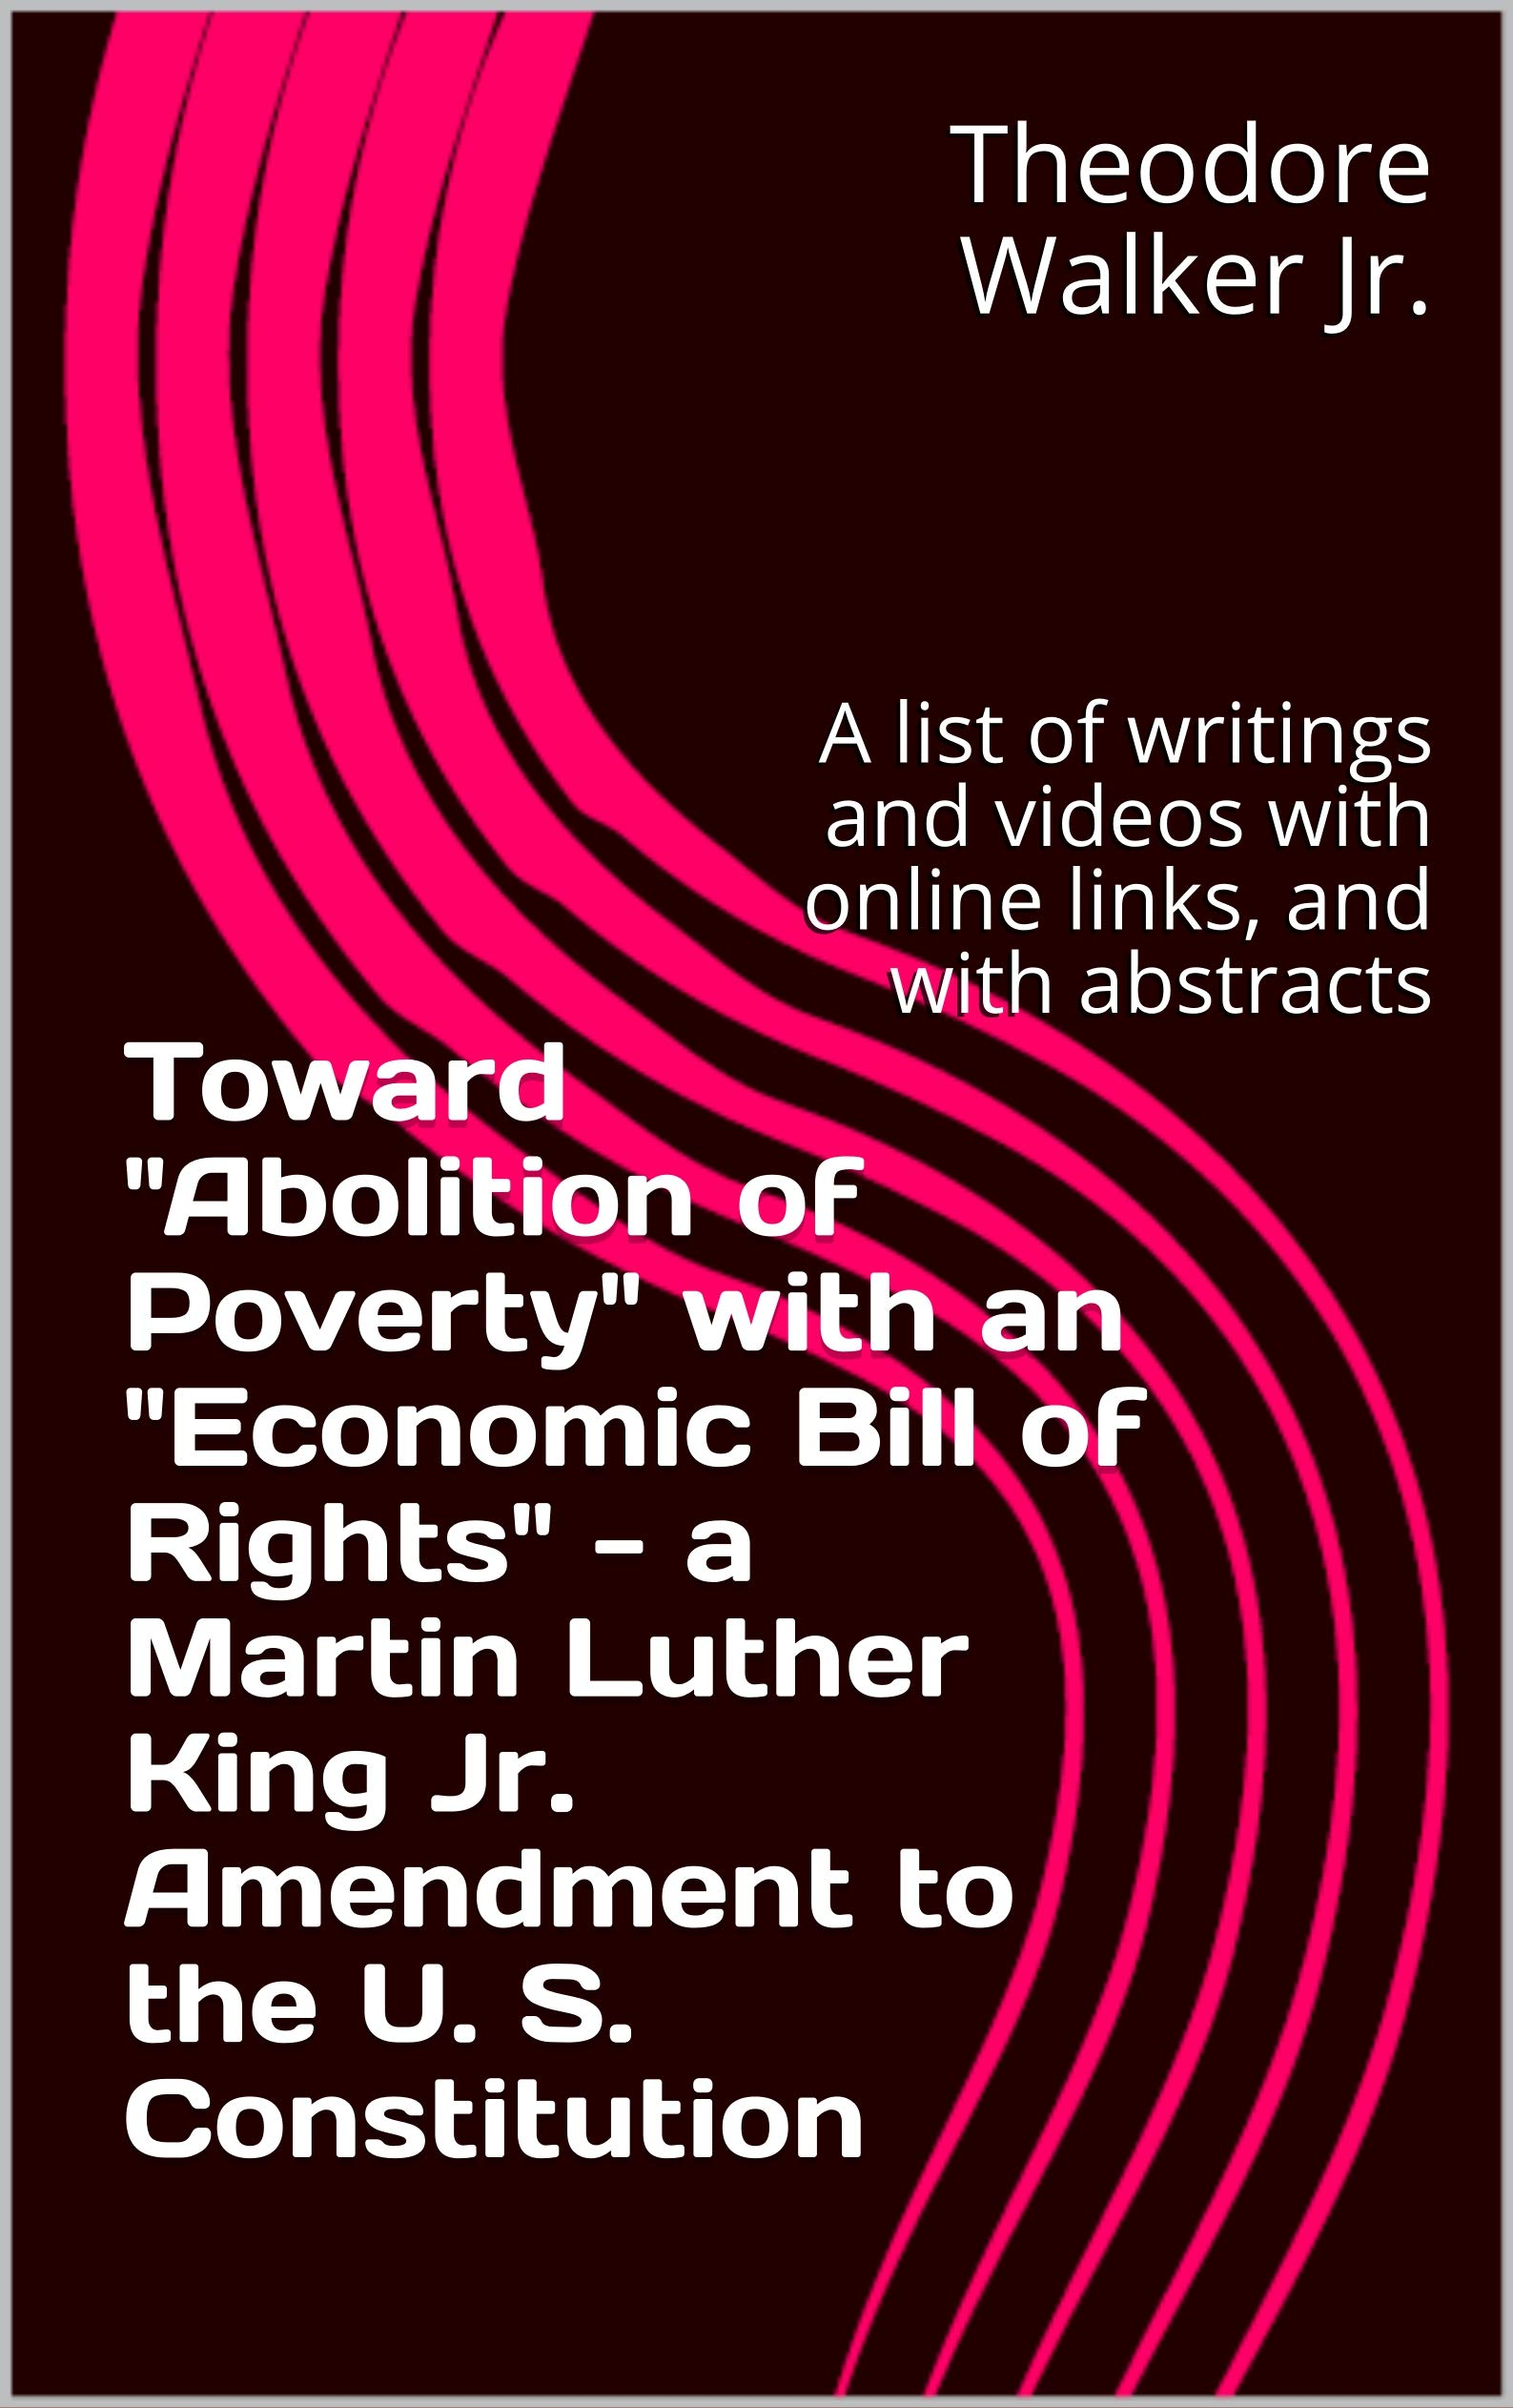 "Toward ""Abolition of Poverty"" with an ""Economic Bill of Rights"" - a Martin Luther King Jr. Amendment to the U. S. Constitution: A list of writings and videos with online links, and with abstracts"